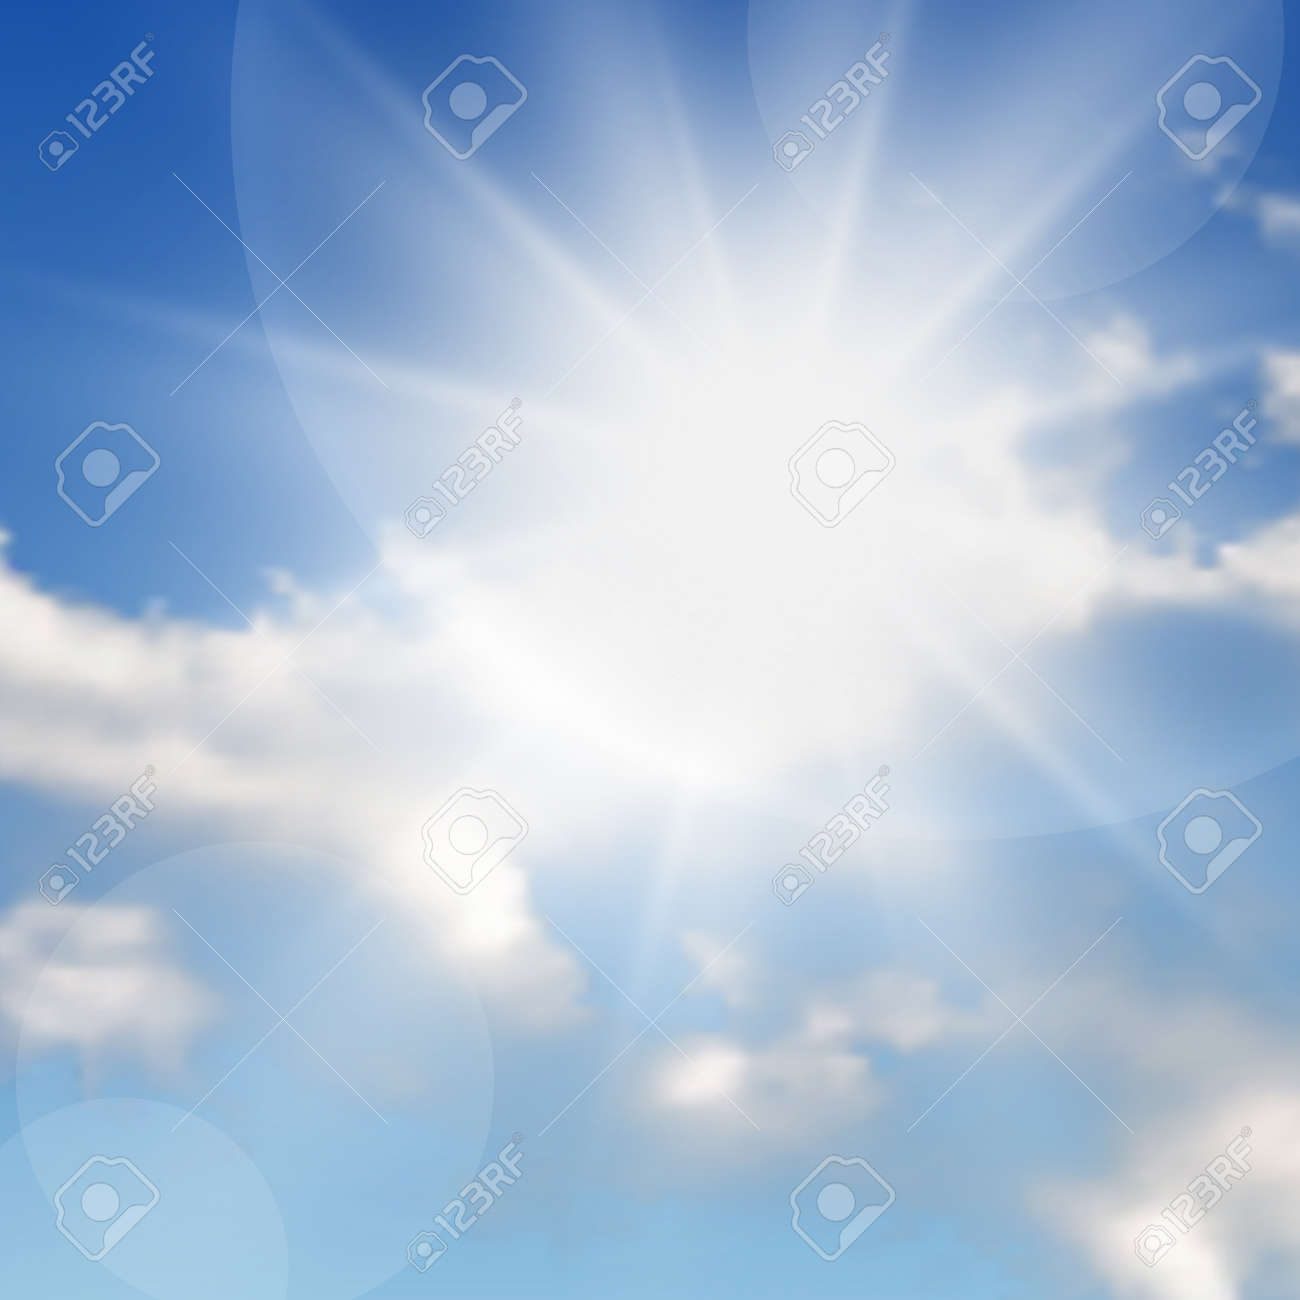 Natural background with clouds and sun on blue sky. Realistic cloud on blue backdrop. Vector illustration - 159434154